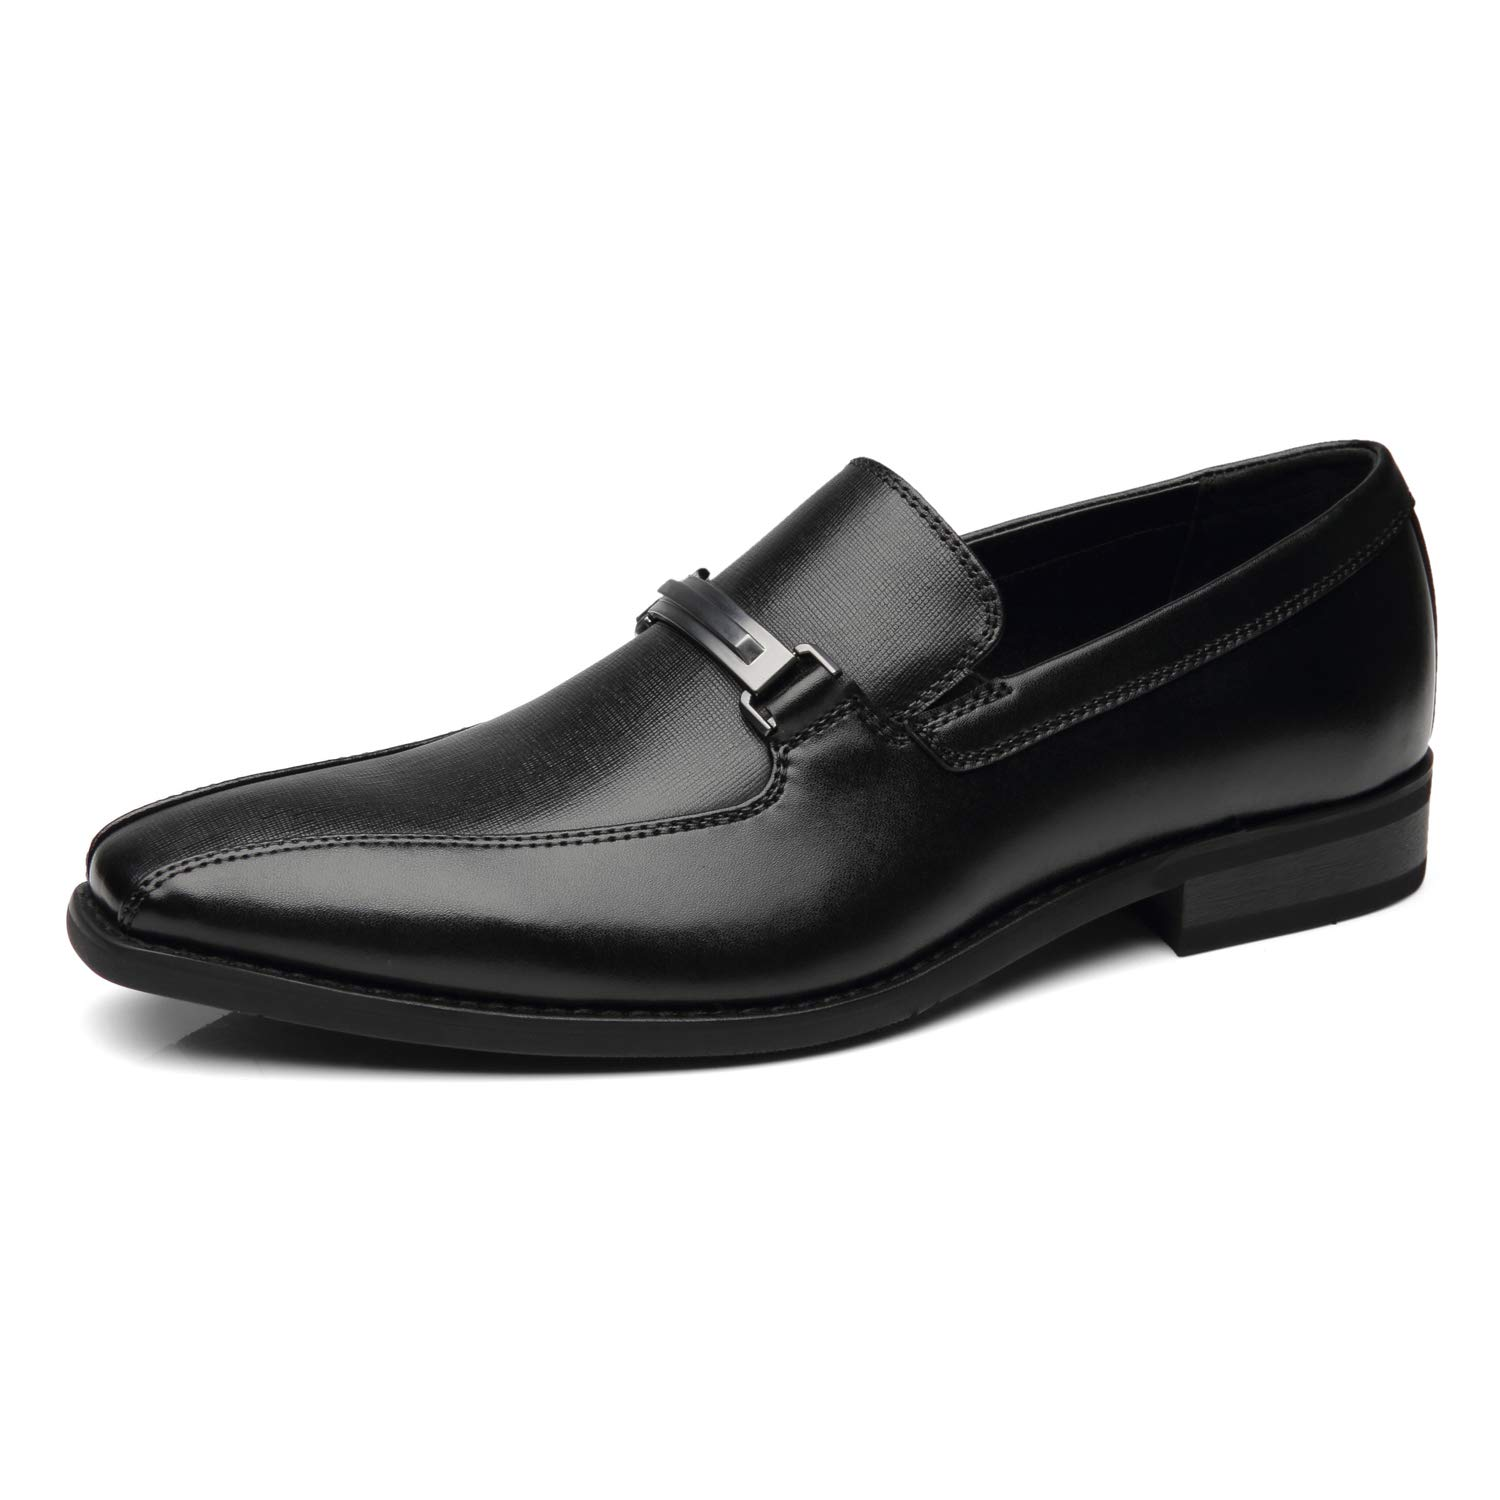 NXT NEW YORK Mens Slip On Buckle Loafers Leather Dress Shoes Bicycle Toe Comfortable Formal Business Shoes for Men